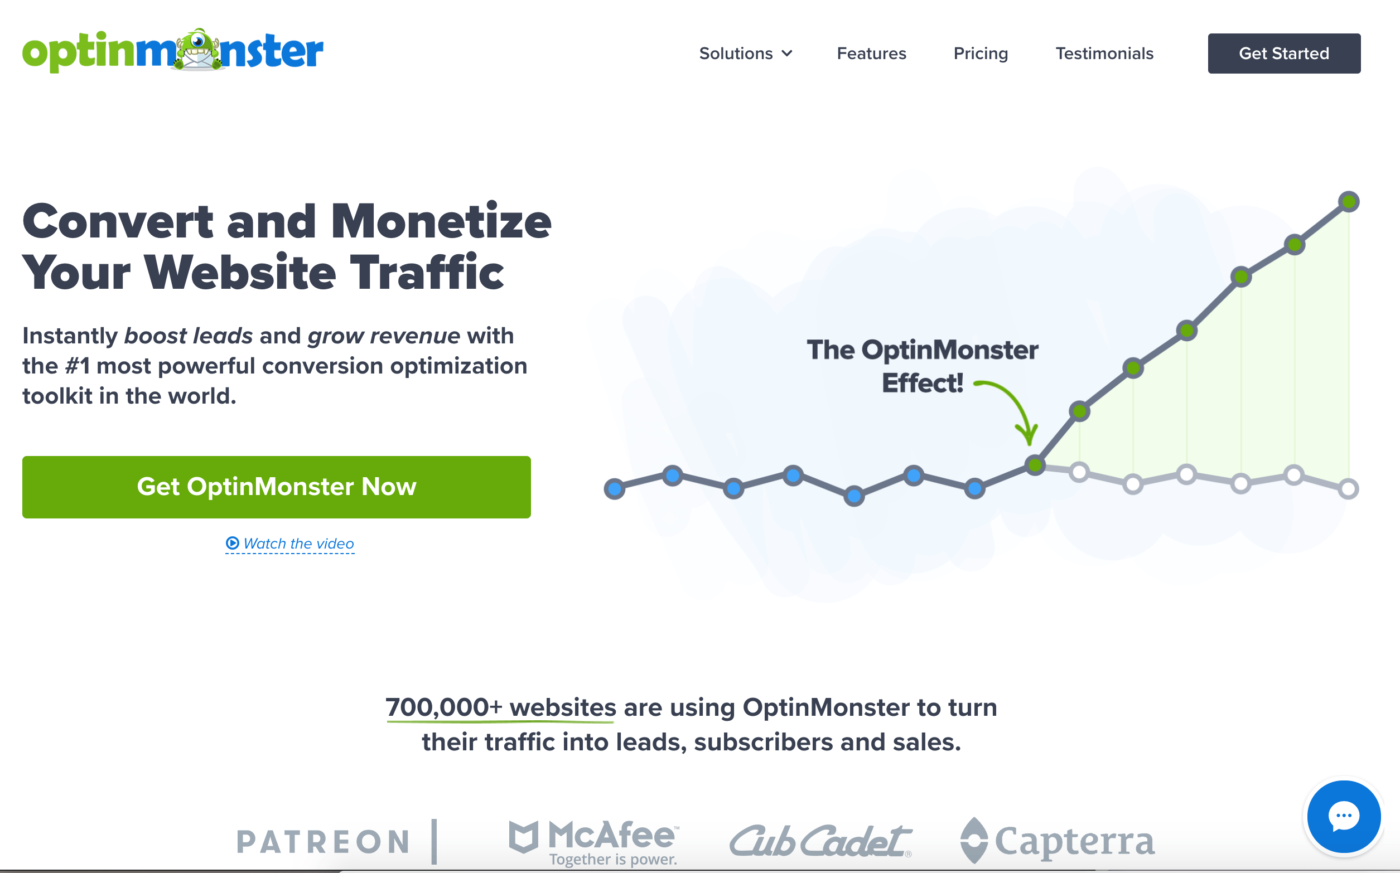 OptinMonster Convert and Monetize Your Website Traffic